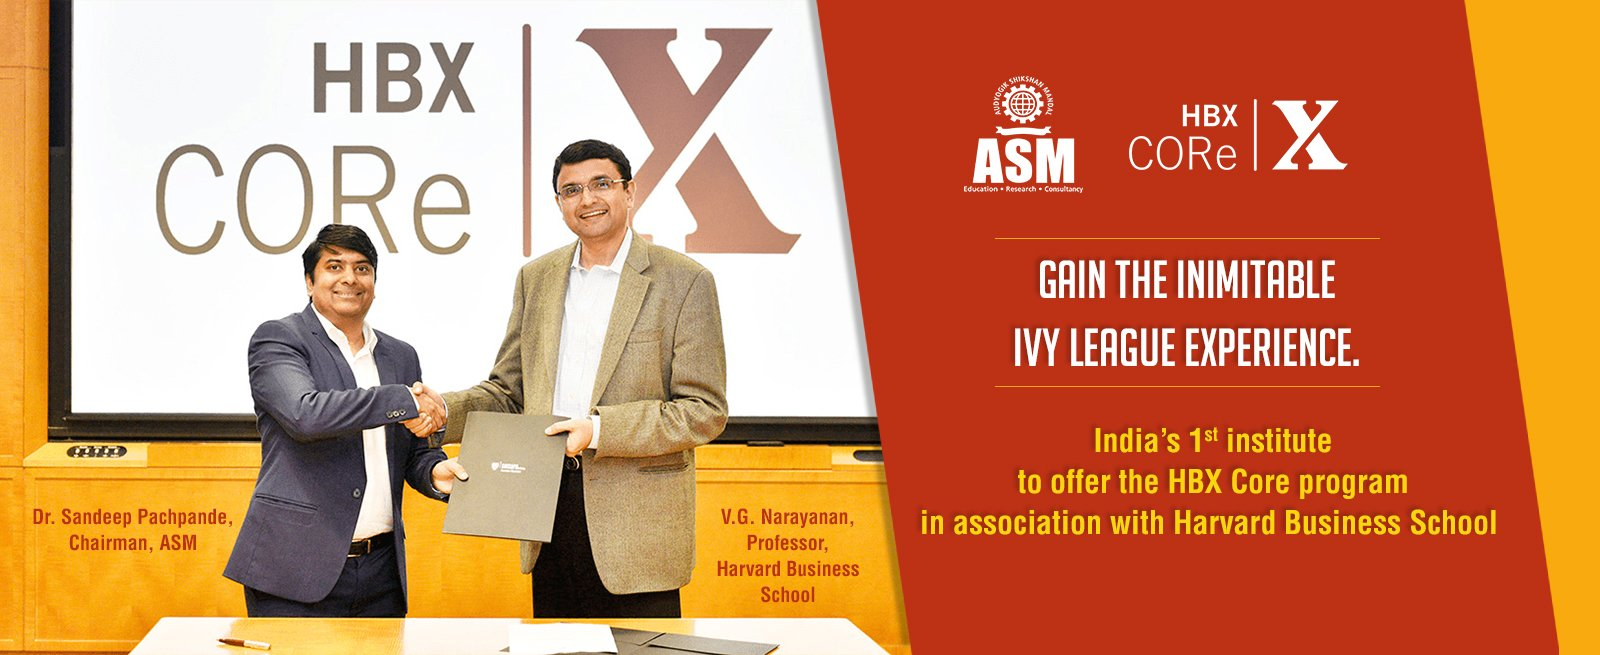 HBX CORE Program in Pune by ASM IBMR